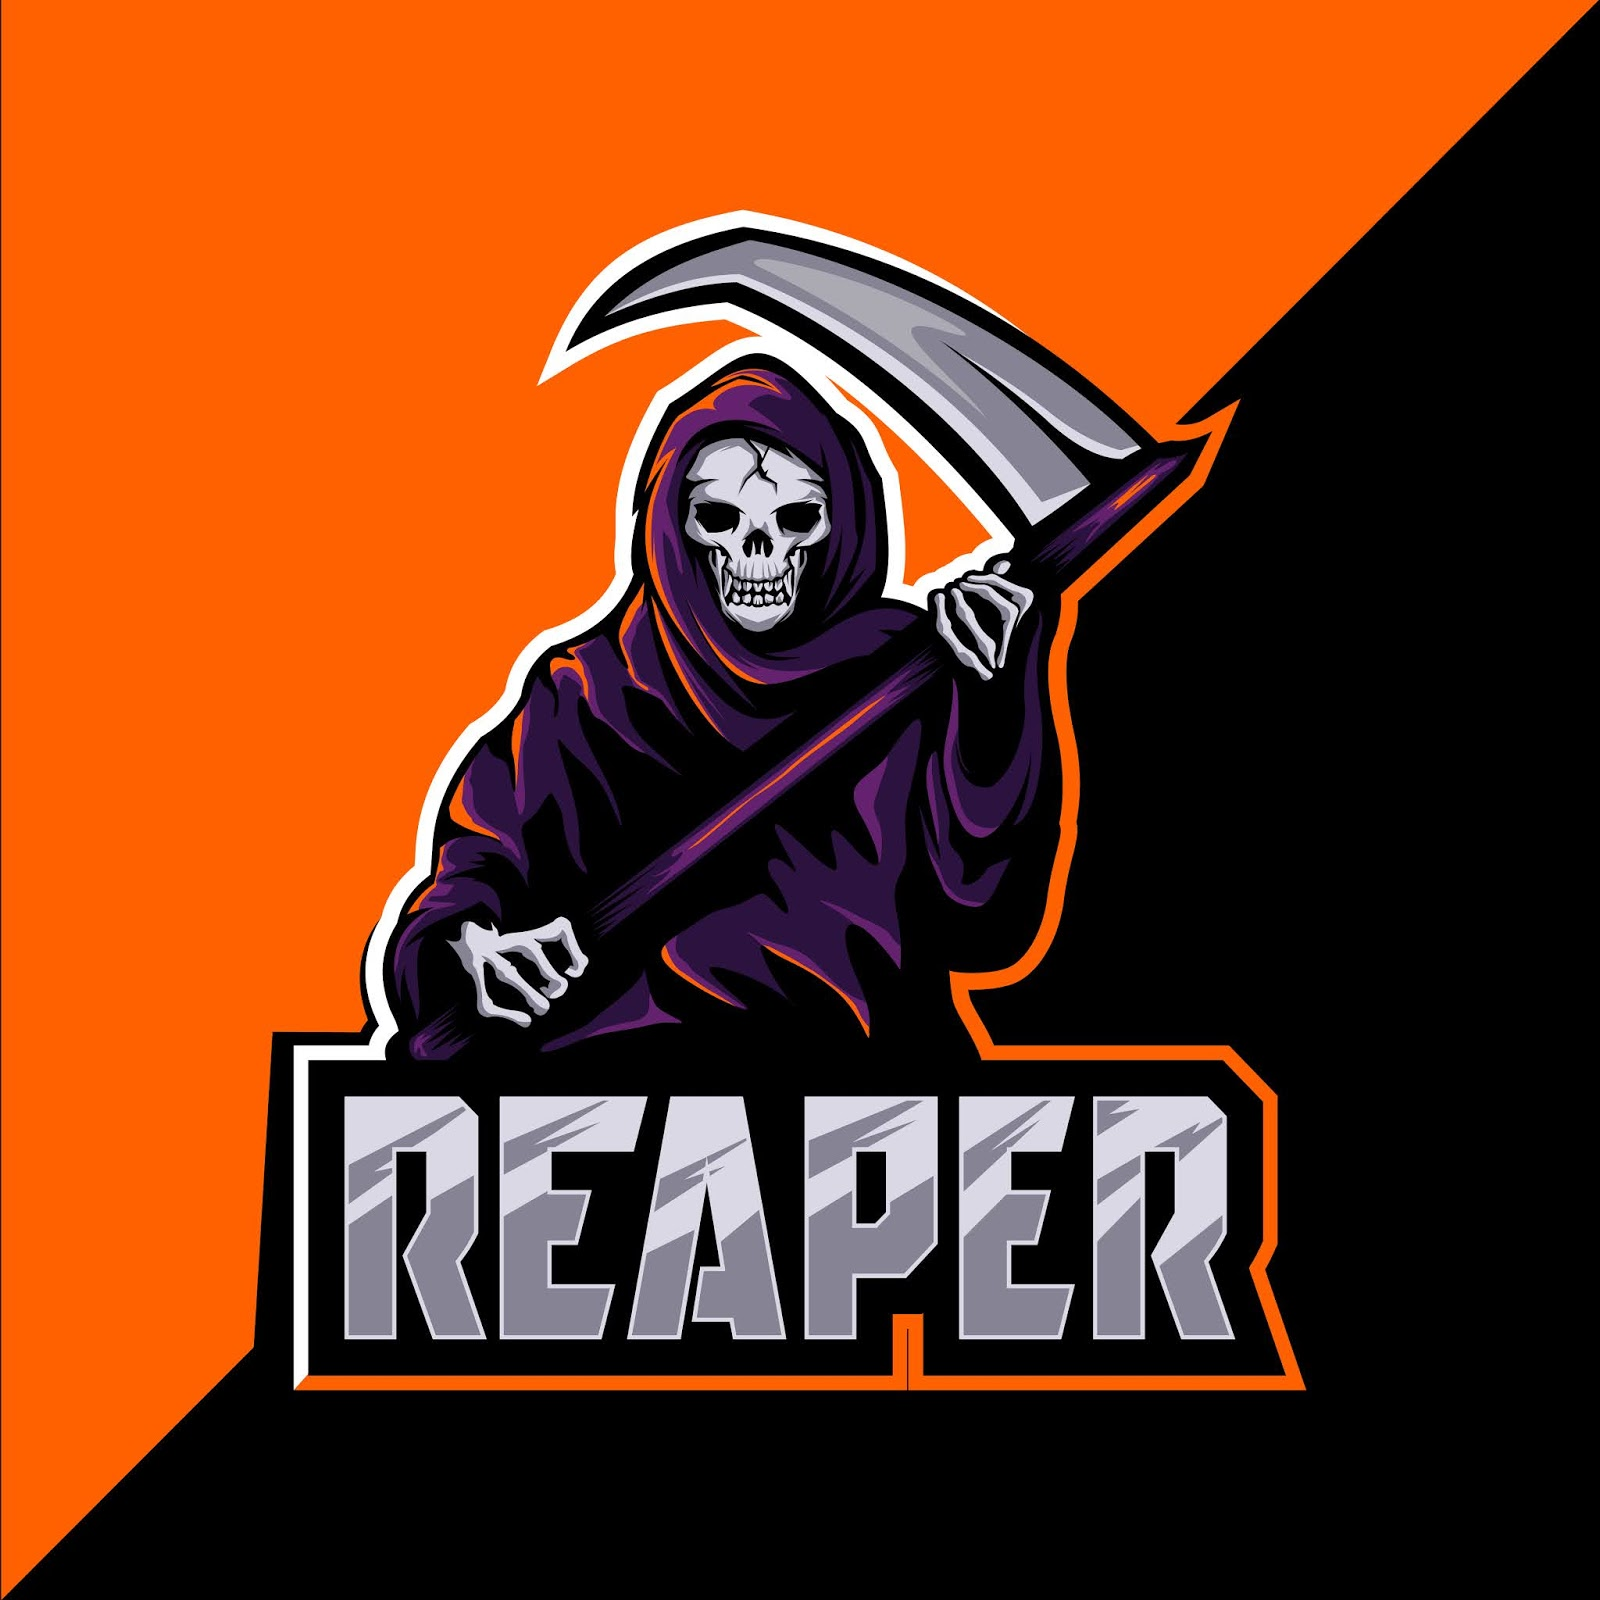 Reaper Skull Mascot Esport Logo Style Free Download Vector CDR, AI, EPS and PNG Formats